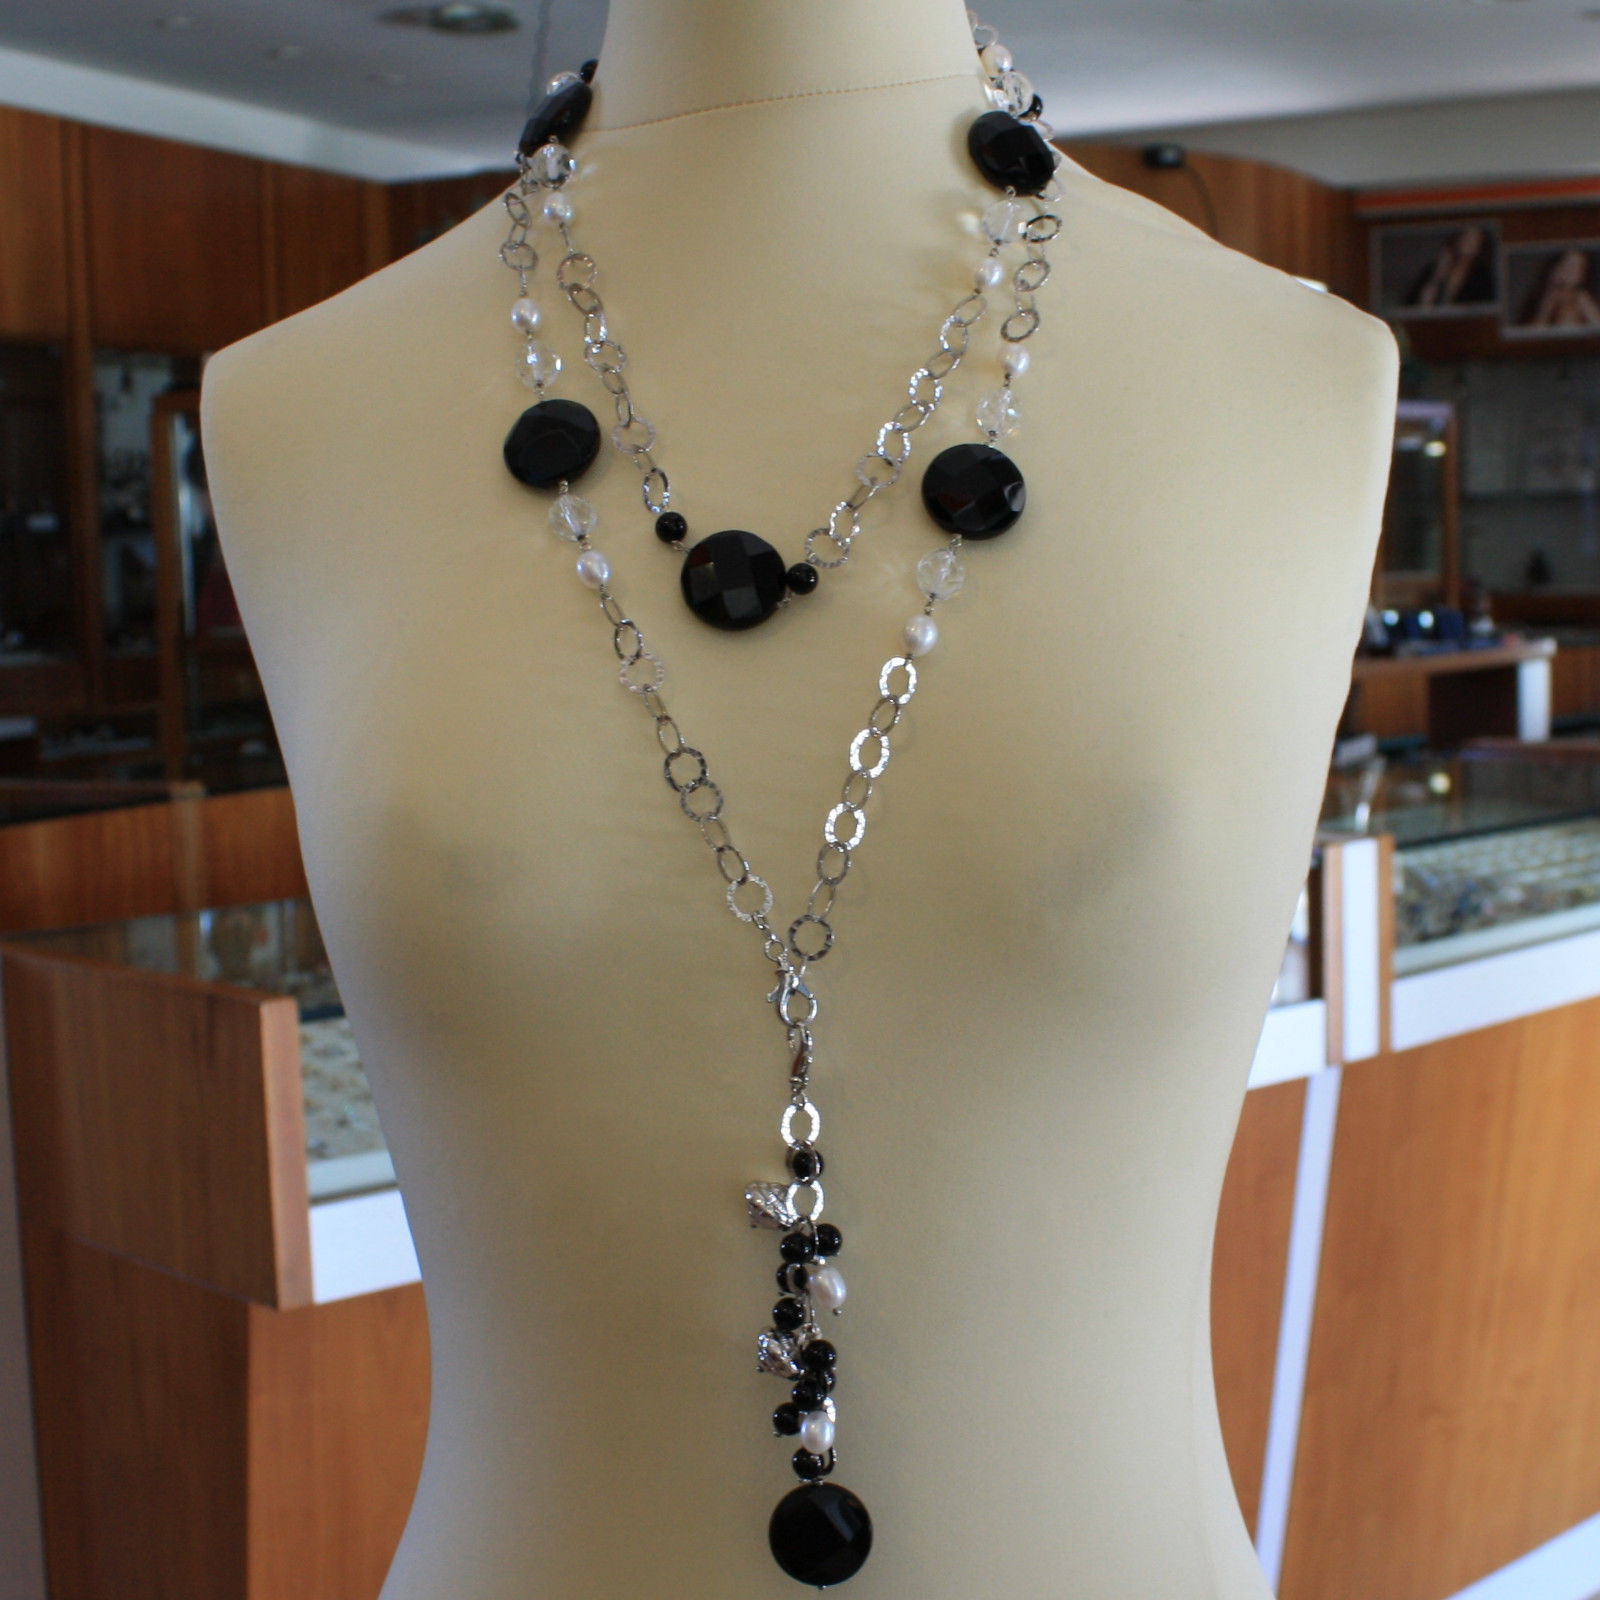 .925 SILVER RHODIUM NECKLACE WITH BLACK ONYX, WHITE PEARLS, CRYSTALS AND AGATE